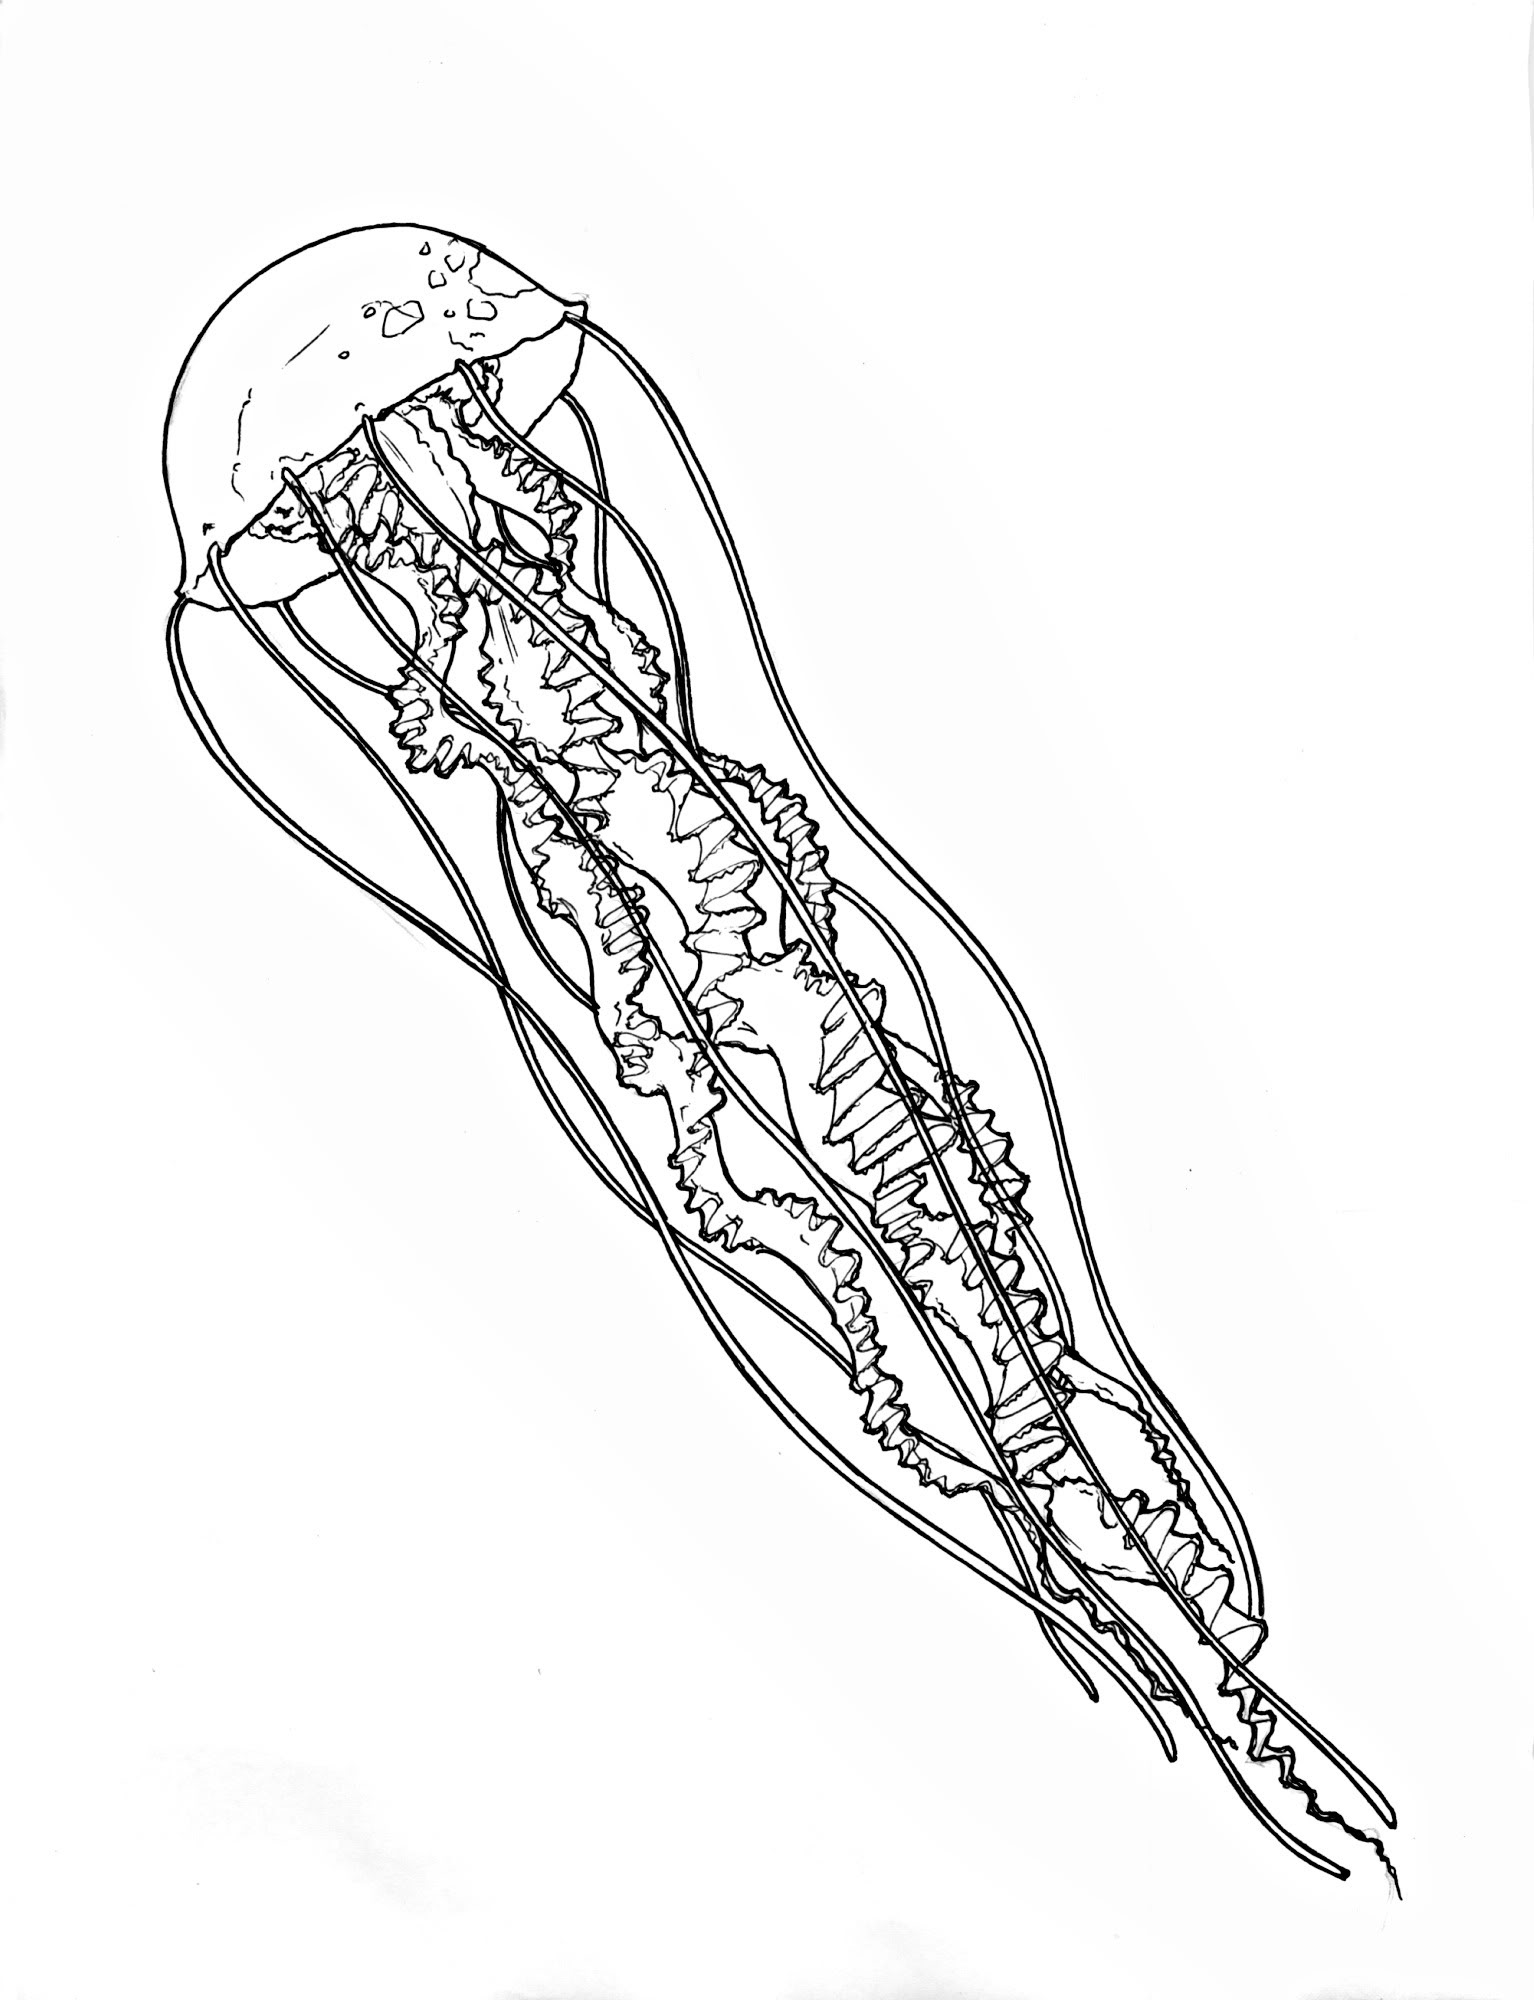 jelly fish sketch simple jellyfish drawing free download on clipartmag jelly sketch fish 1 1